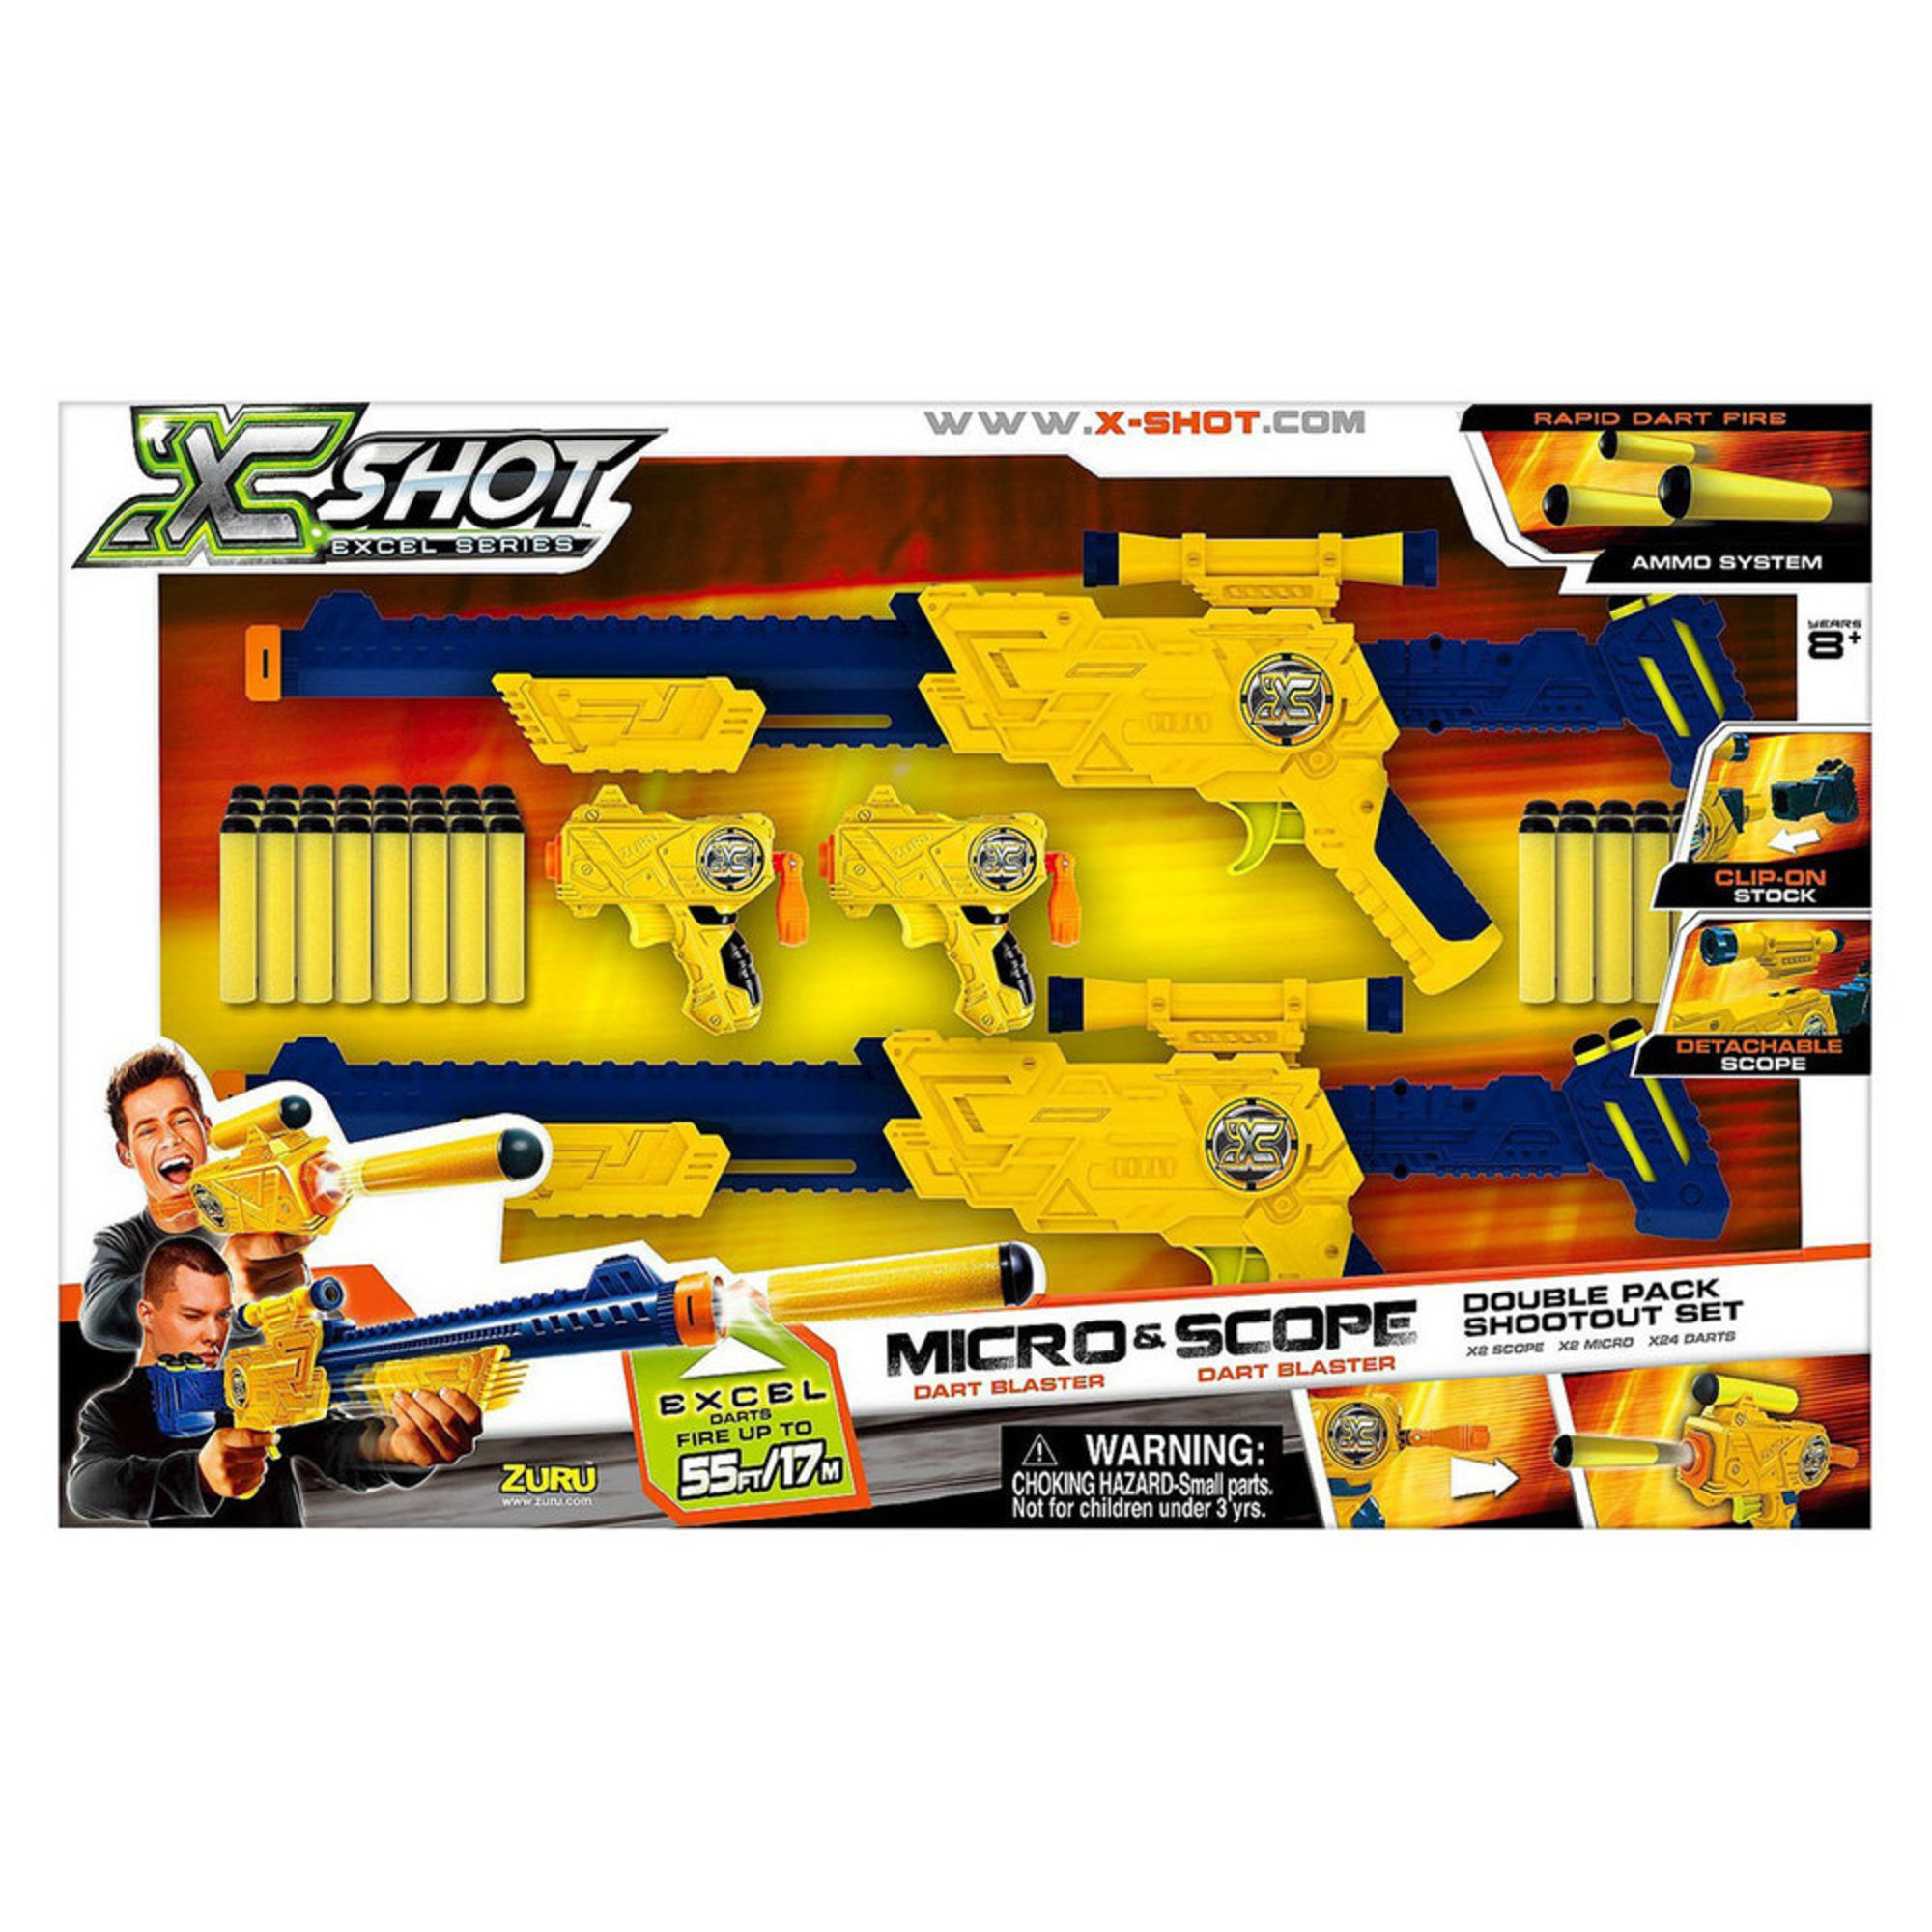 Zuru x shot micro scope dart blaster toy blasters baby kids zuru x shot micro scope dart blaster stopboris Choice Image